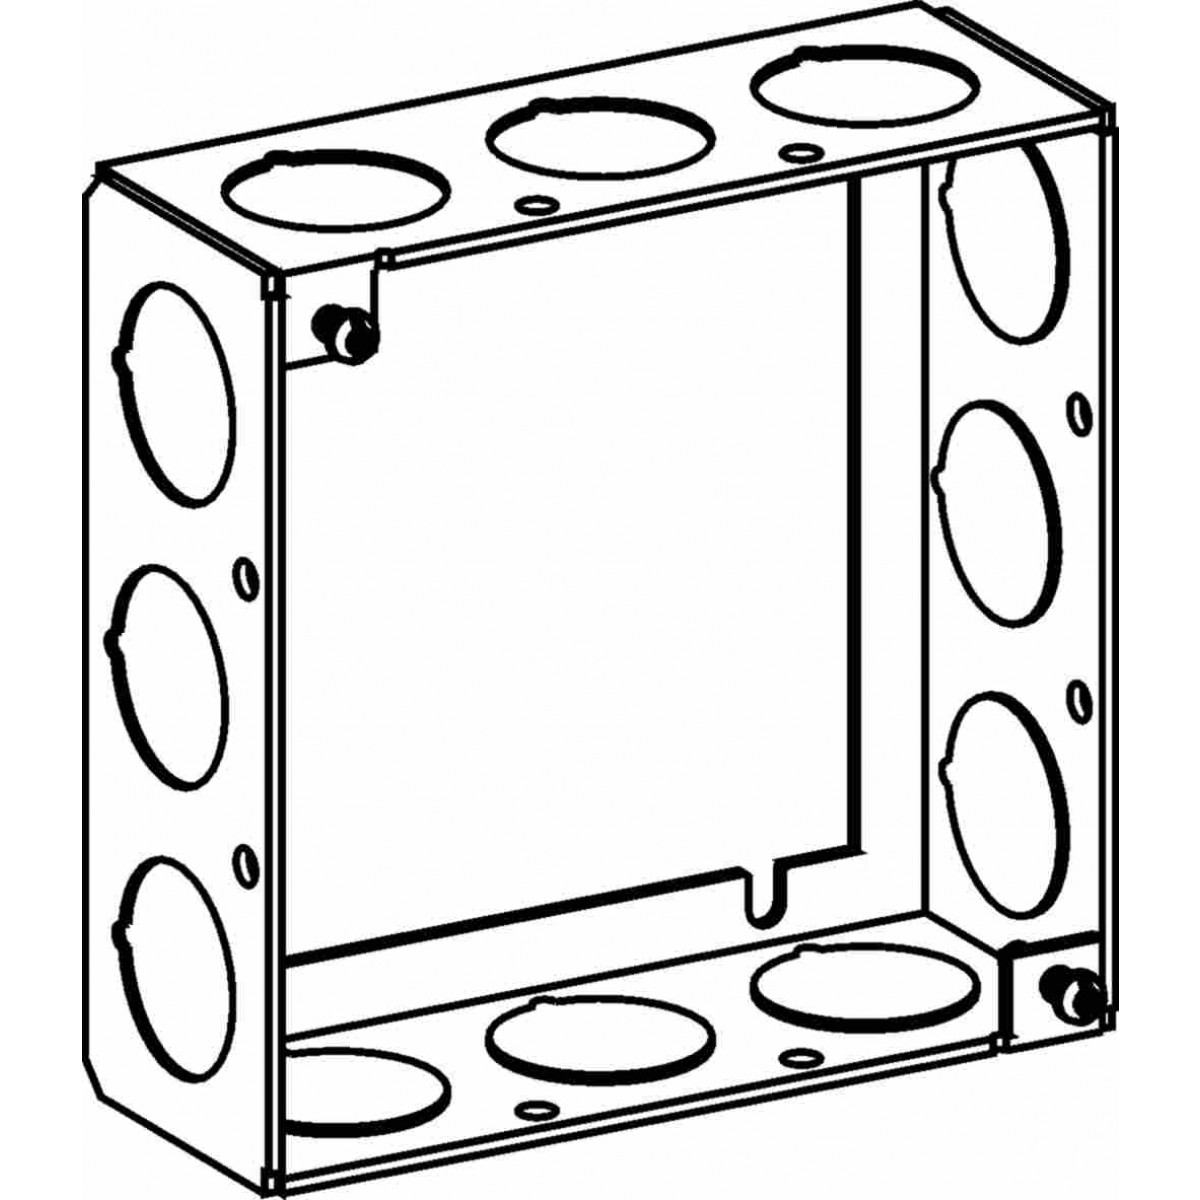 5 Inch Square Electrical Box